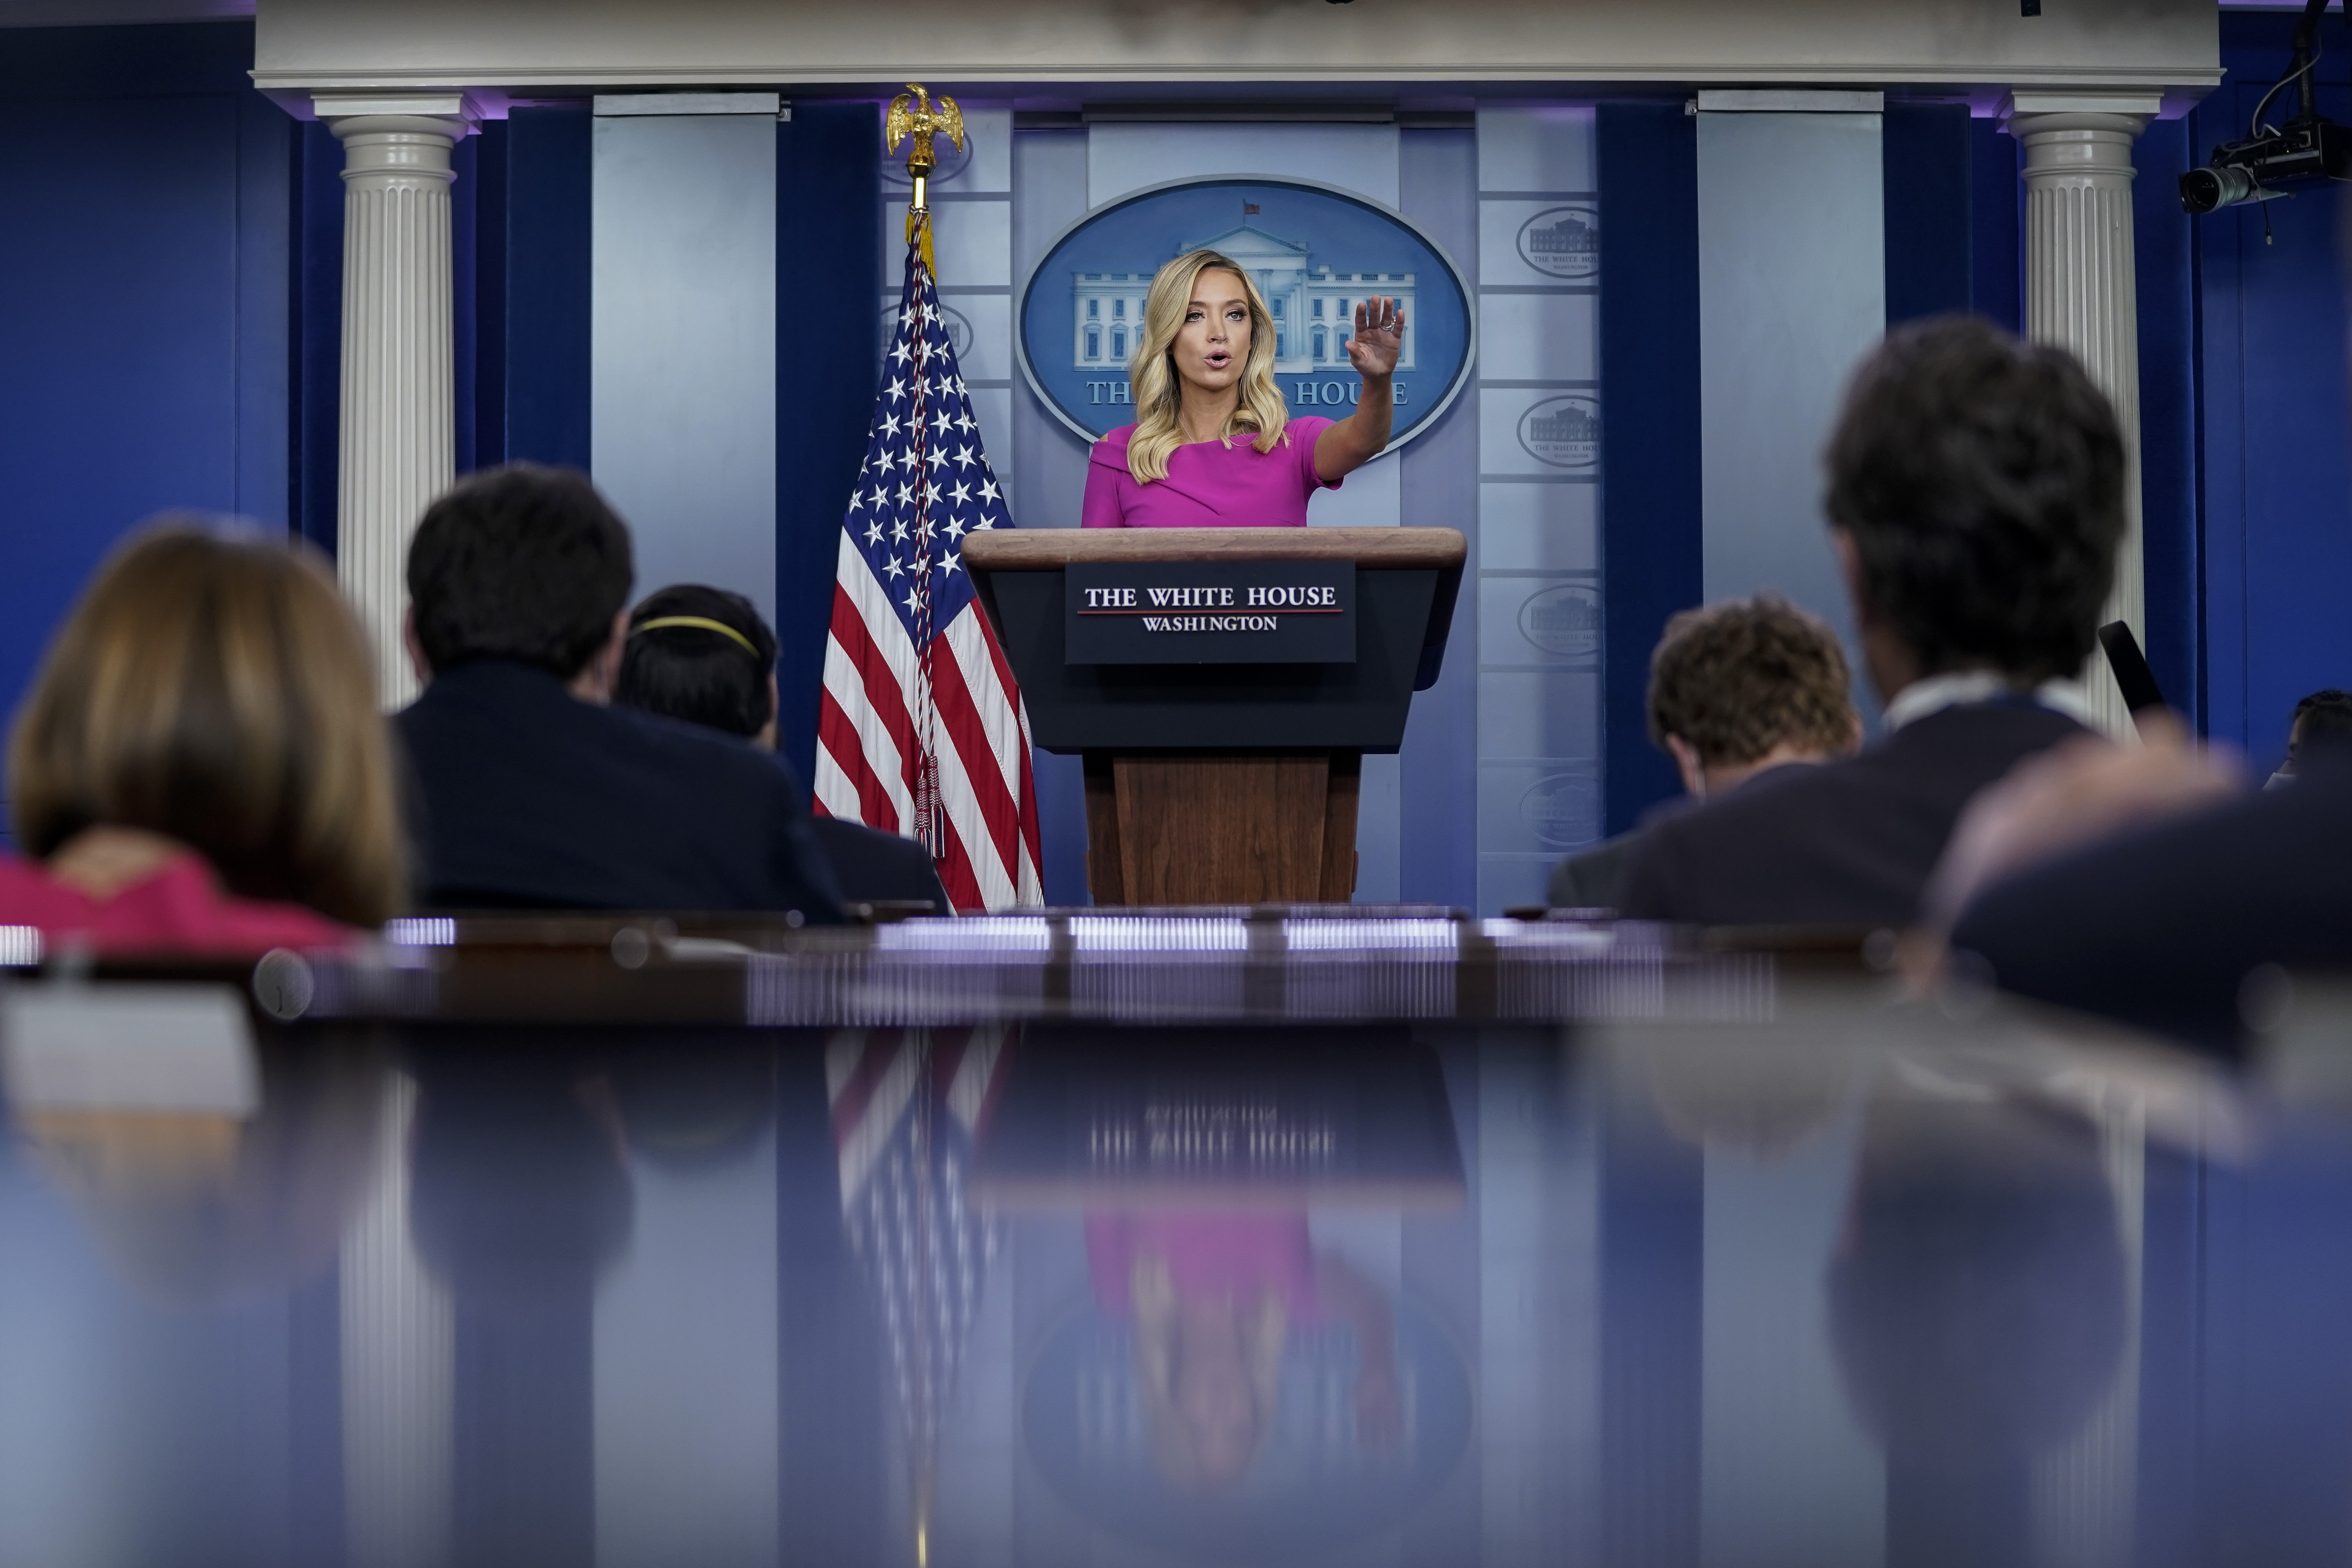 WASHINGTON, DC - JUNE 22: Press Secretary Kayleigh McEnany speaks during a press briefing at the White House on June 22, 2020 in Washington, DC. McEnany fielded questions ranging from President Trump's Saturday rally in Tulsa, the coronavirus pandemic and Venezuelan President Nicolas Maduro. (Photo by Drew Angerer/Getty Images)